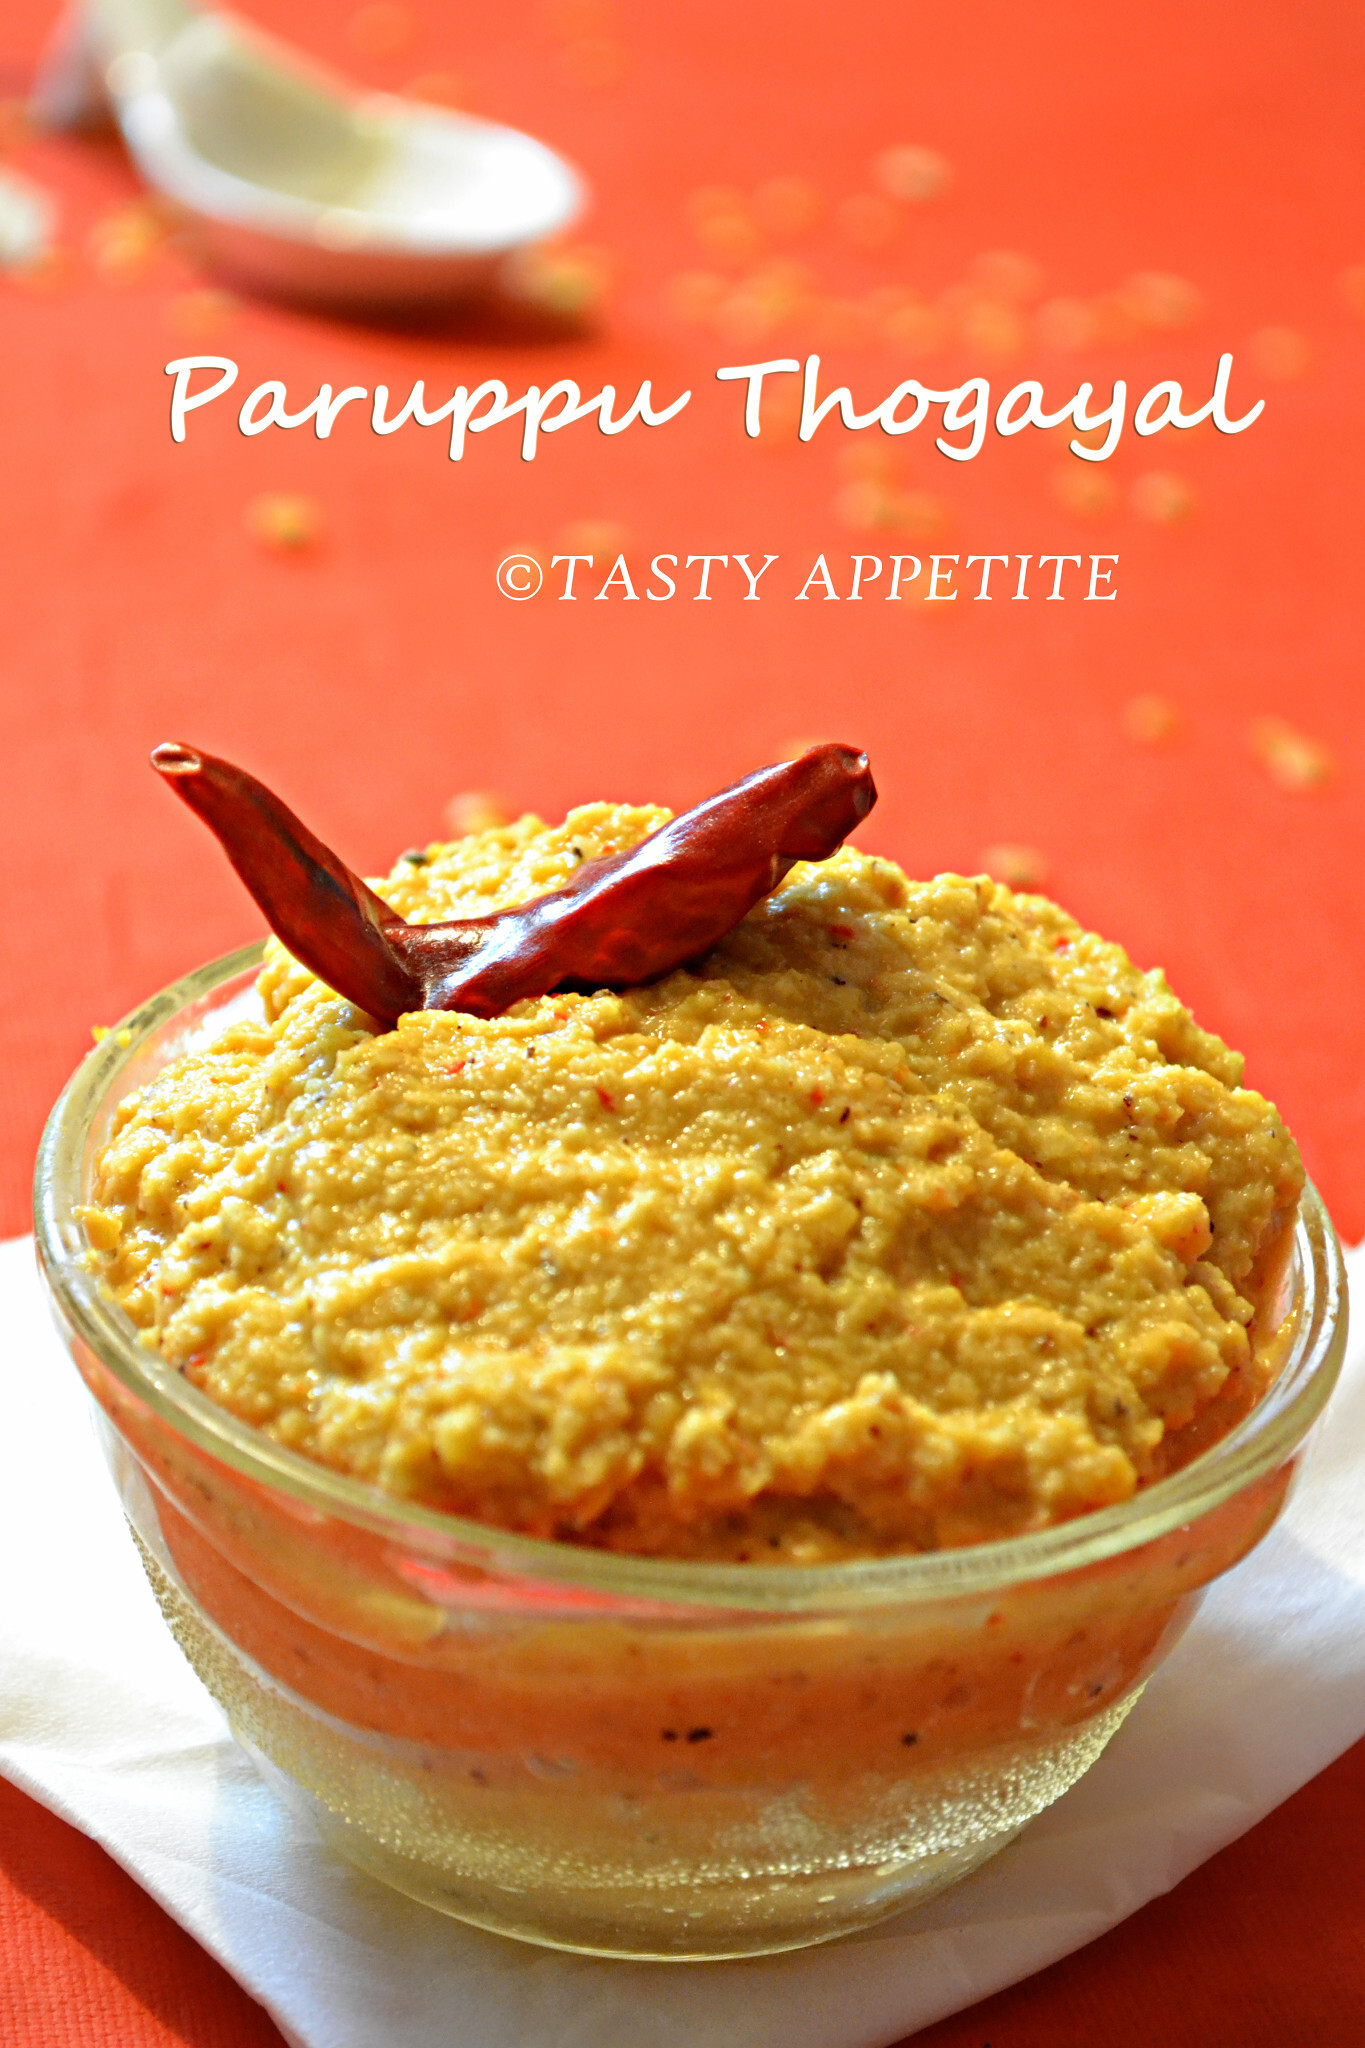 Paruppu Thogayal / Paruppu Thuvaiyal /  Dal Chutney / Healthy Thogayal Recipes: